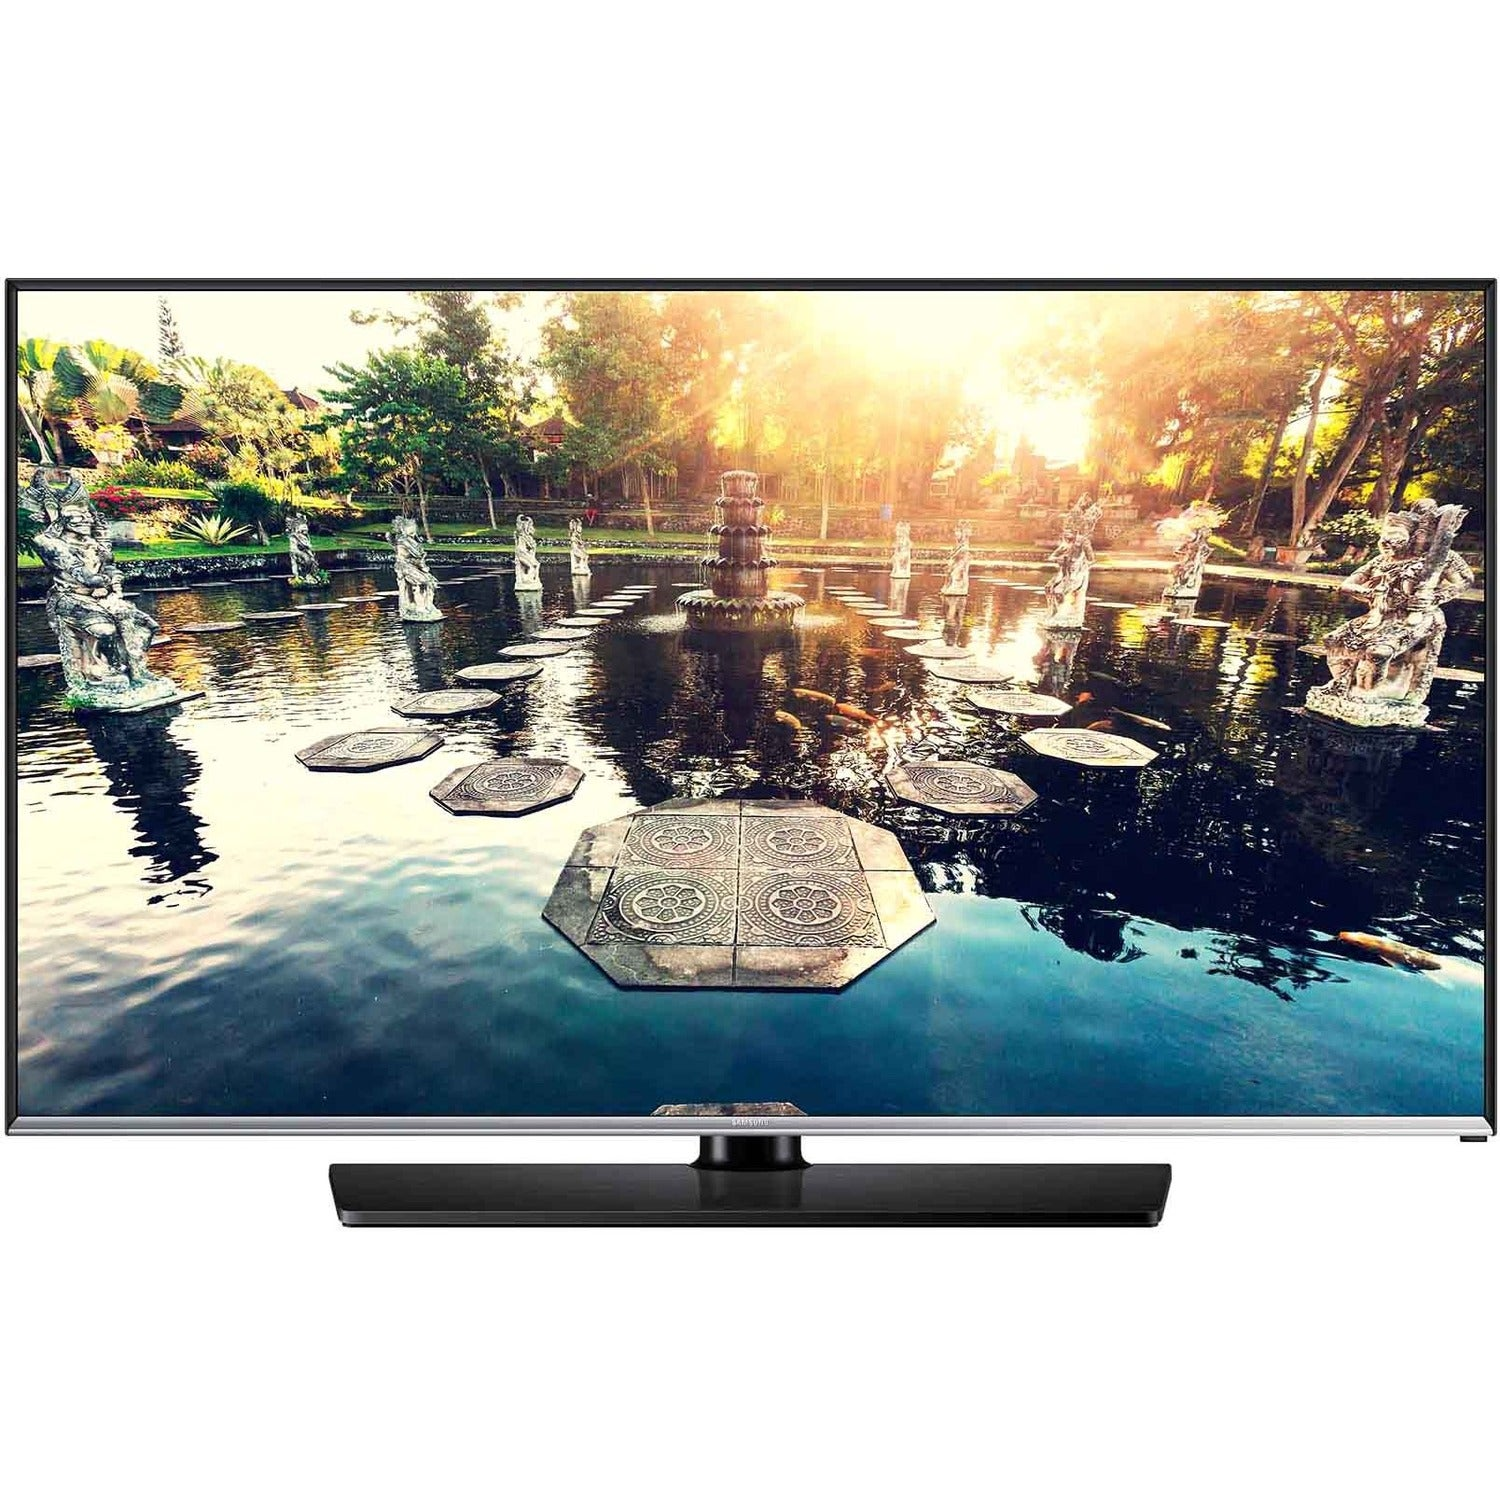 "Samsung 690 HG32NE690BF 32"" 1080p LED-LCD TV - 16:9 - Bla..."